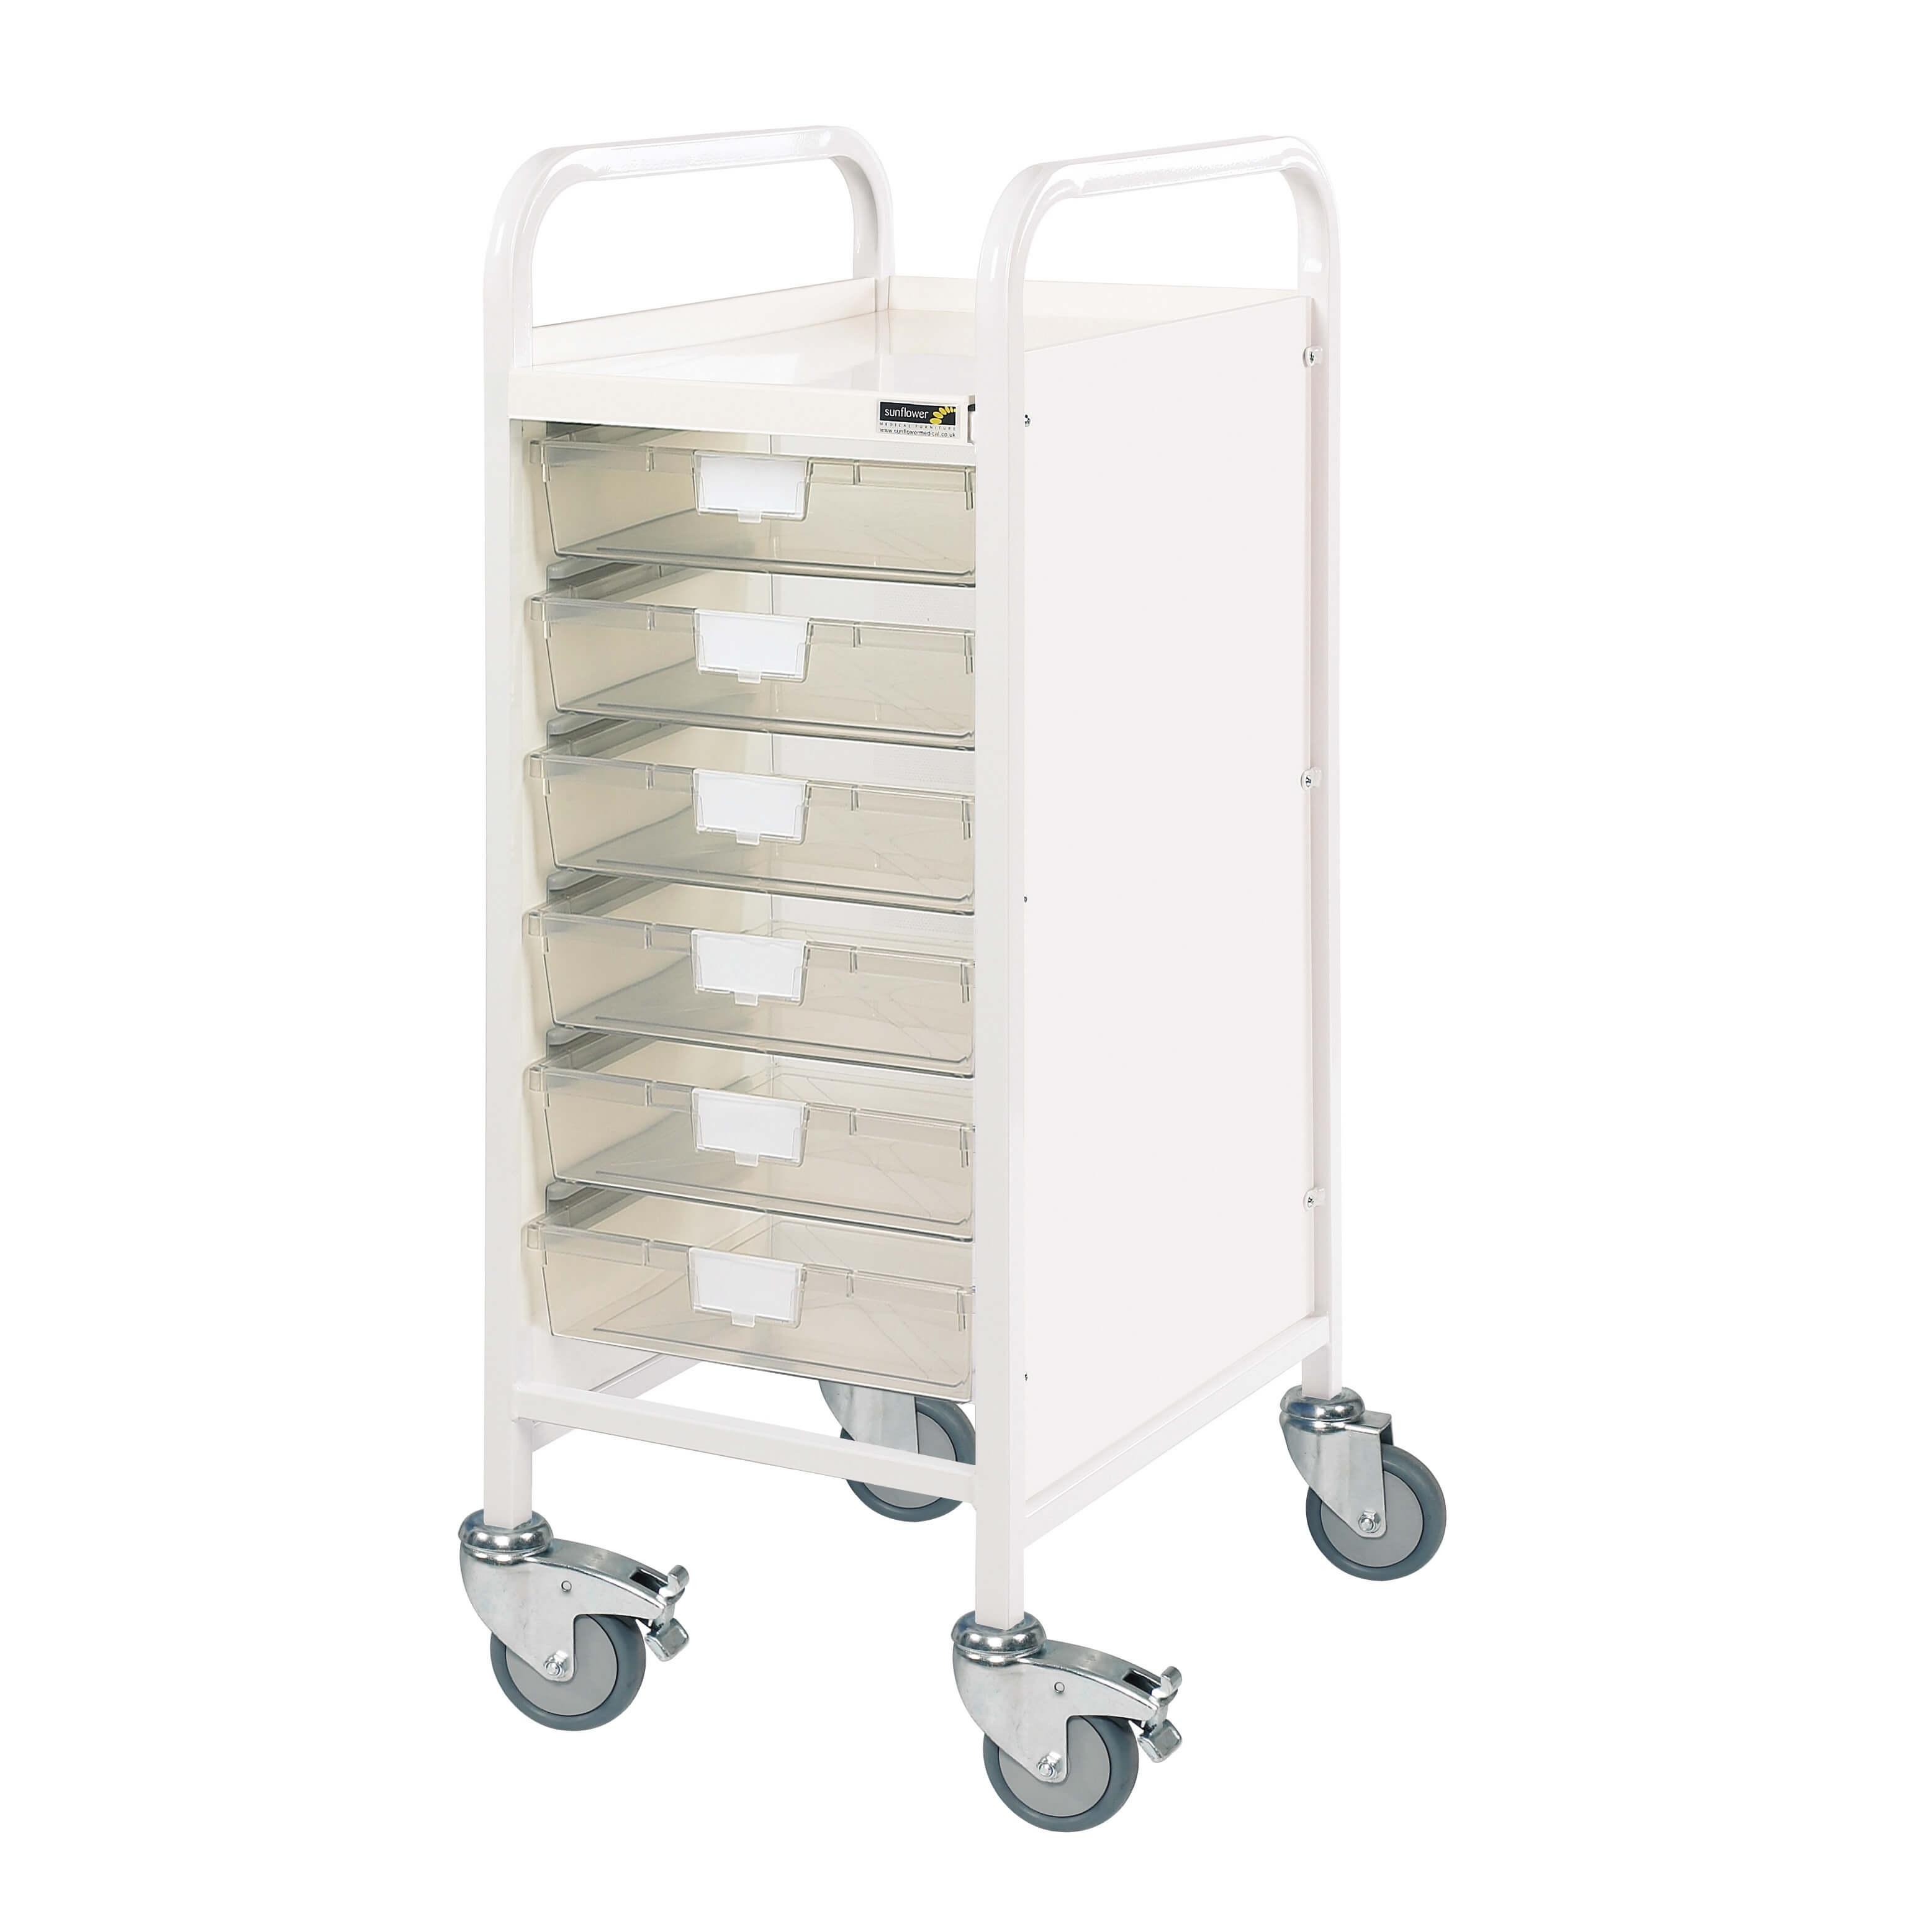 VISTA 30 Trolley with 6 Single Trays [Sun-MPT10]